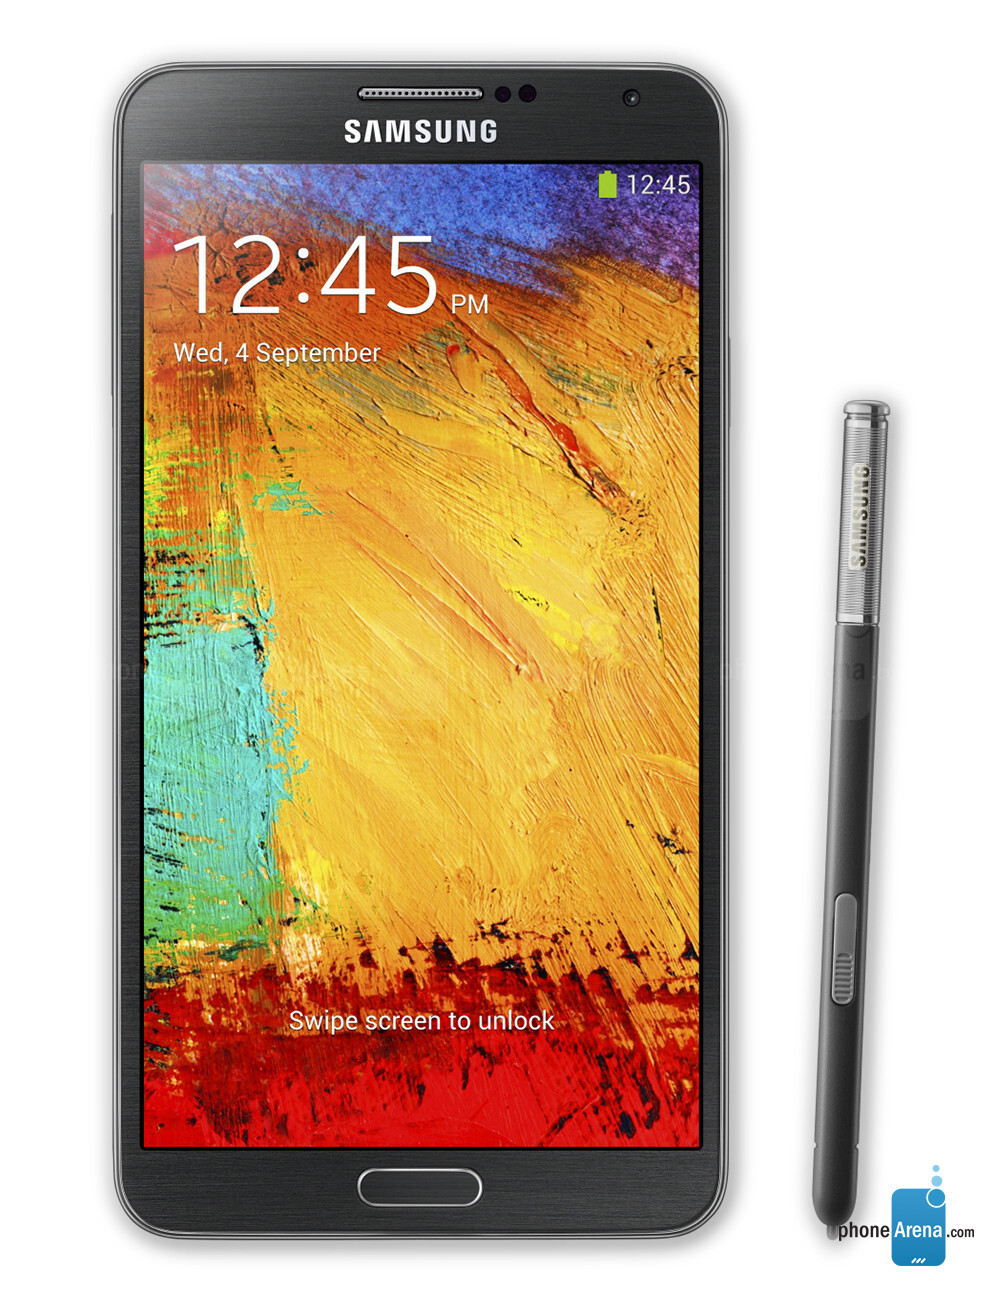 Samsung Galaxy Note 3, 2.7 seconds